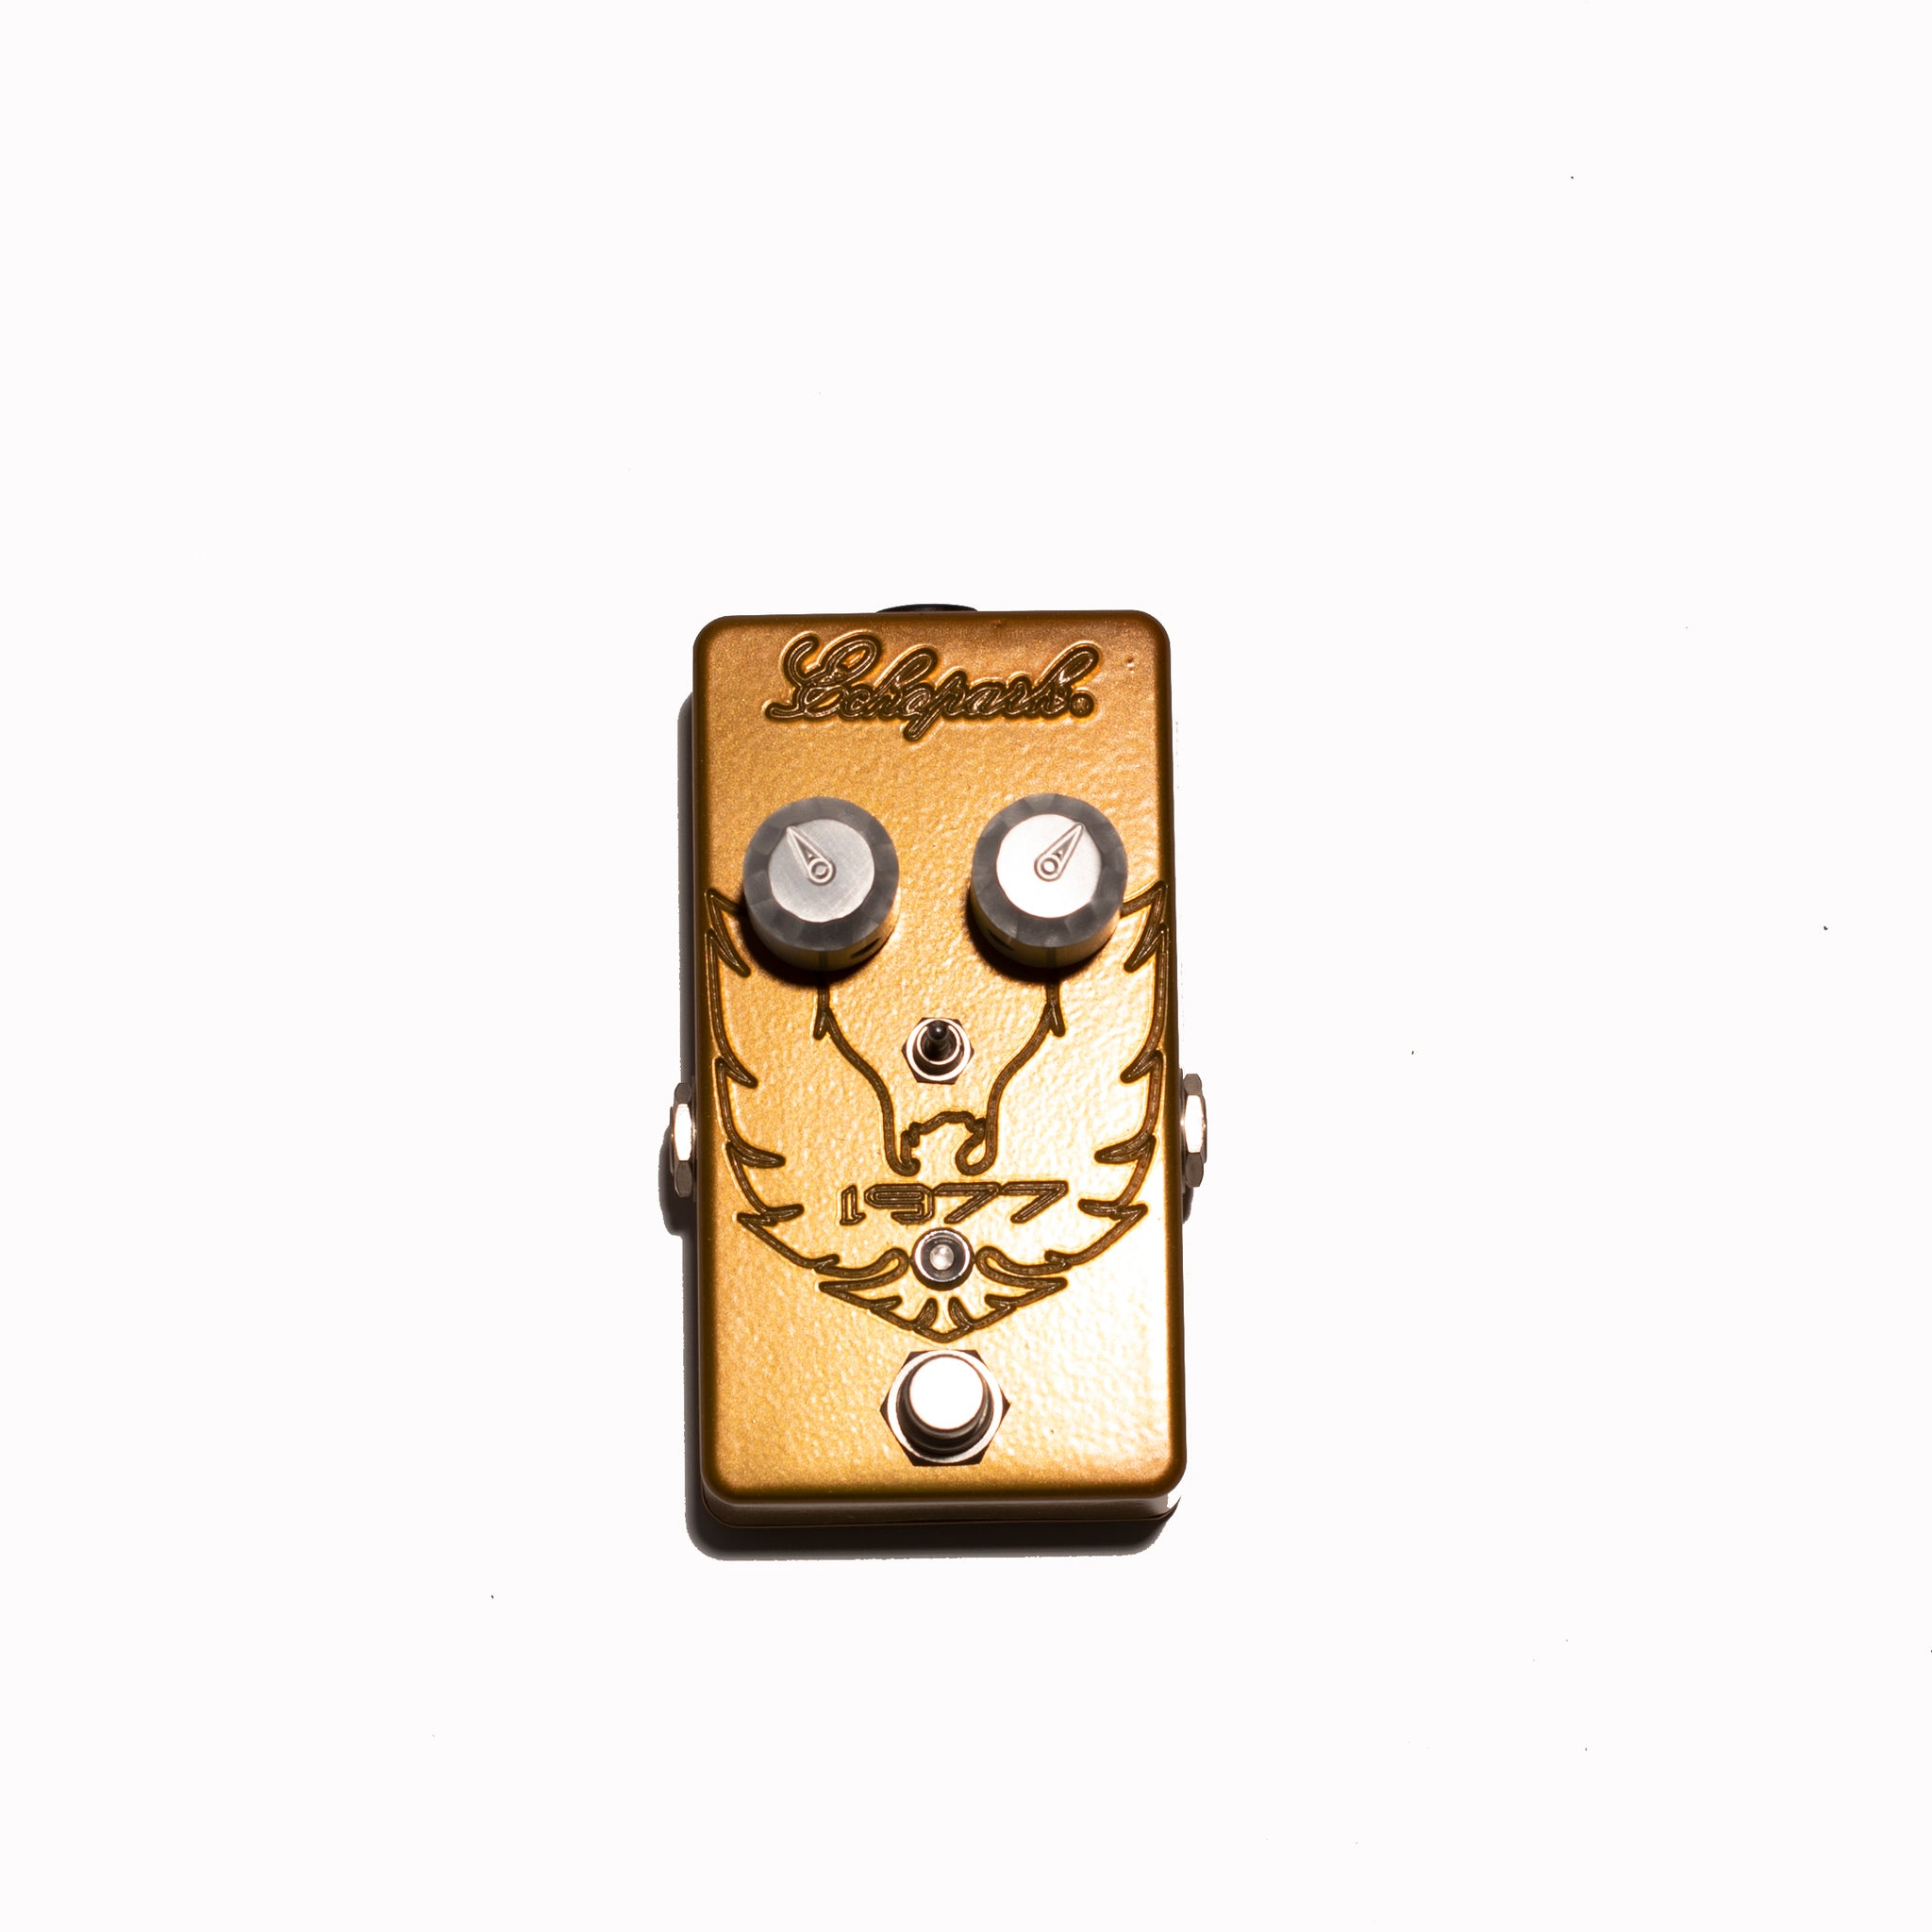 Echopark 1977 Gold Edition Overdrive